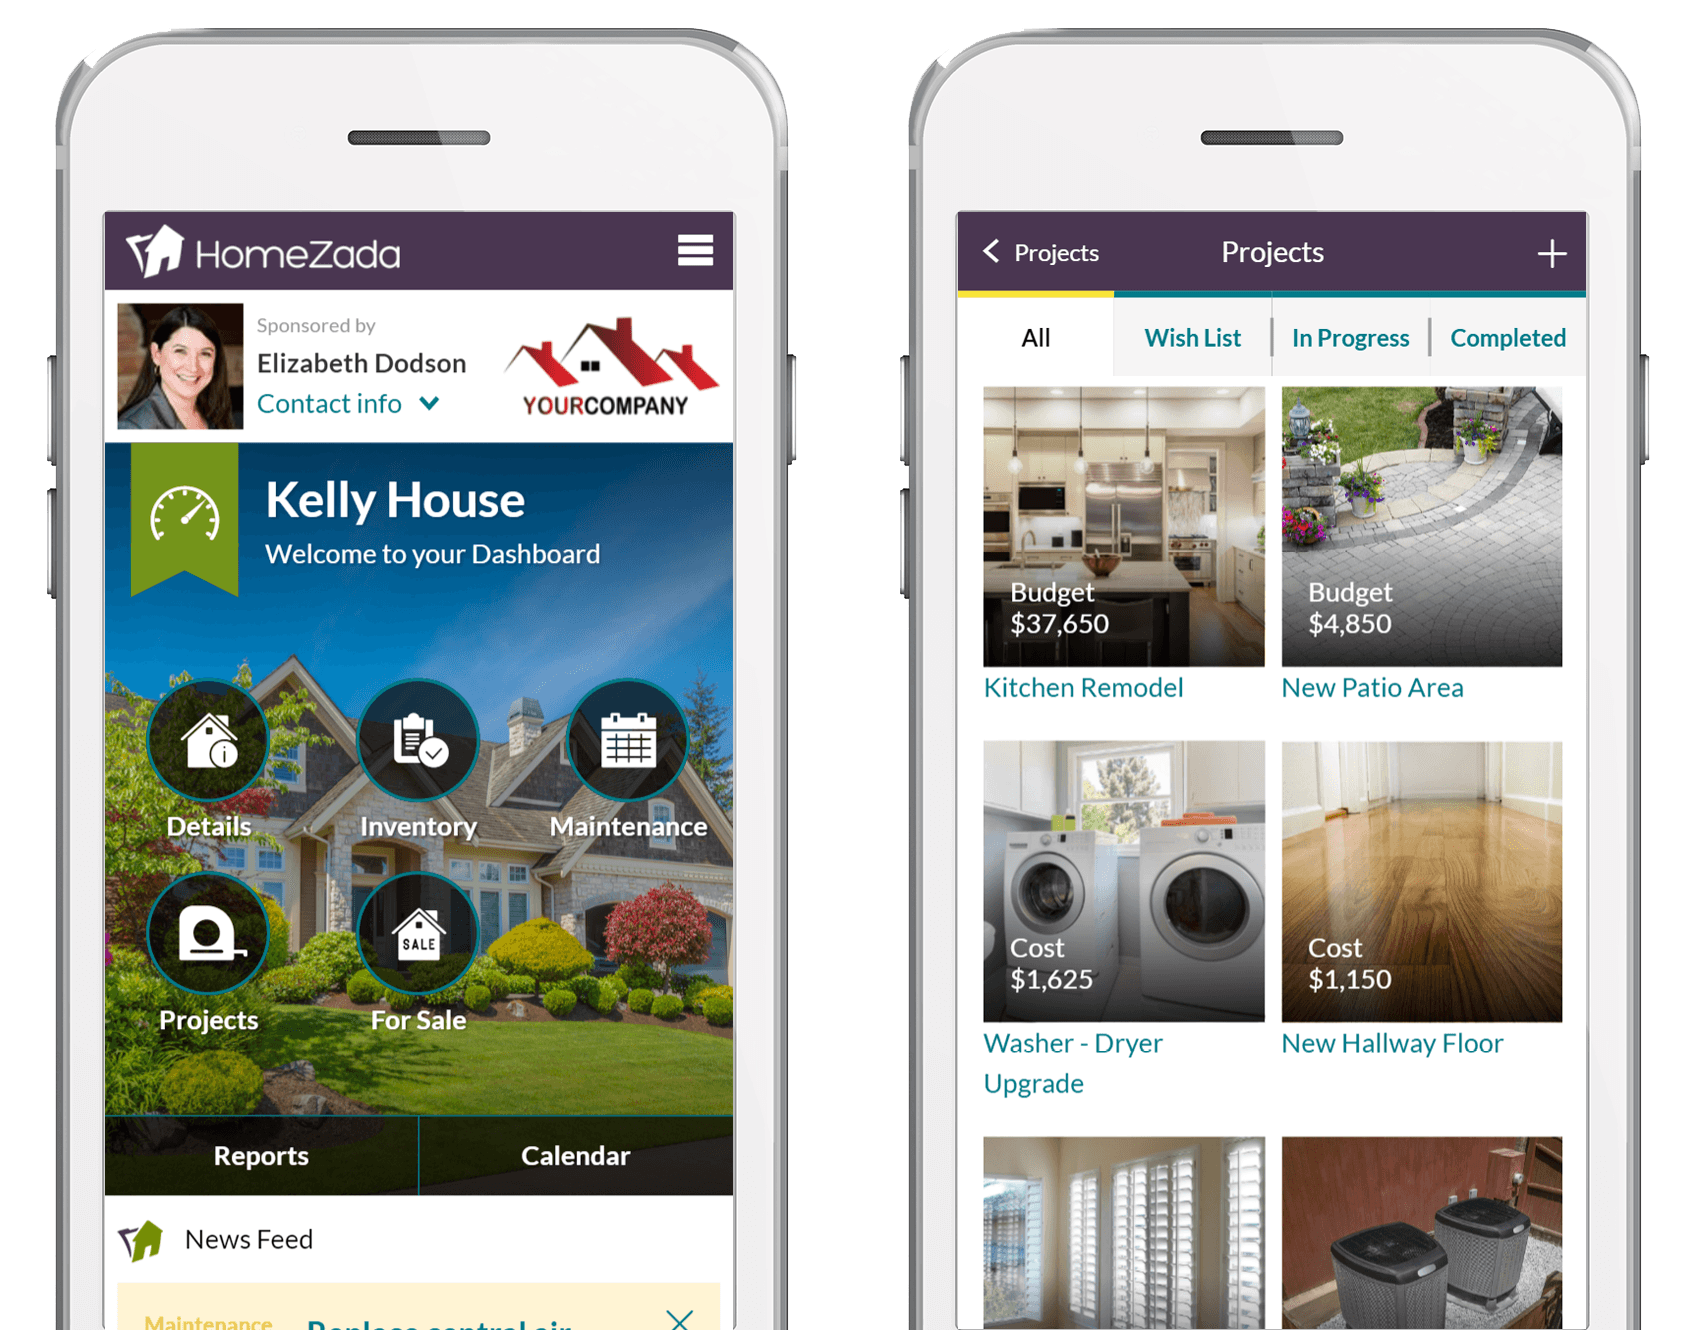 Homezada pro branding ad for realtors and real estate agents